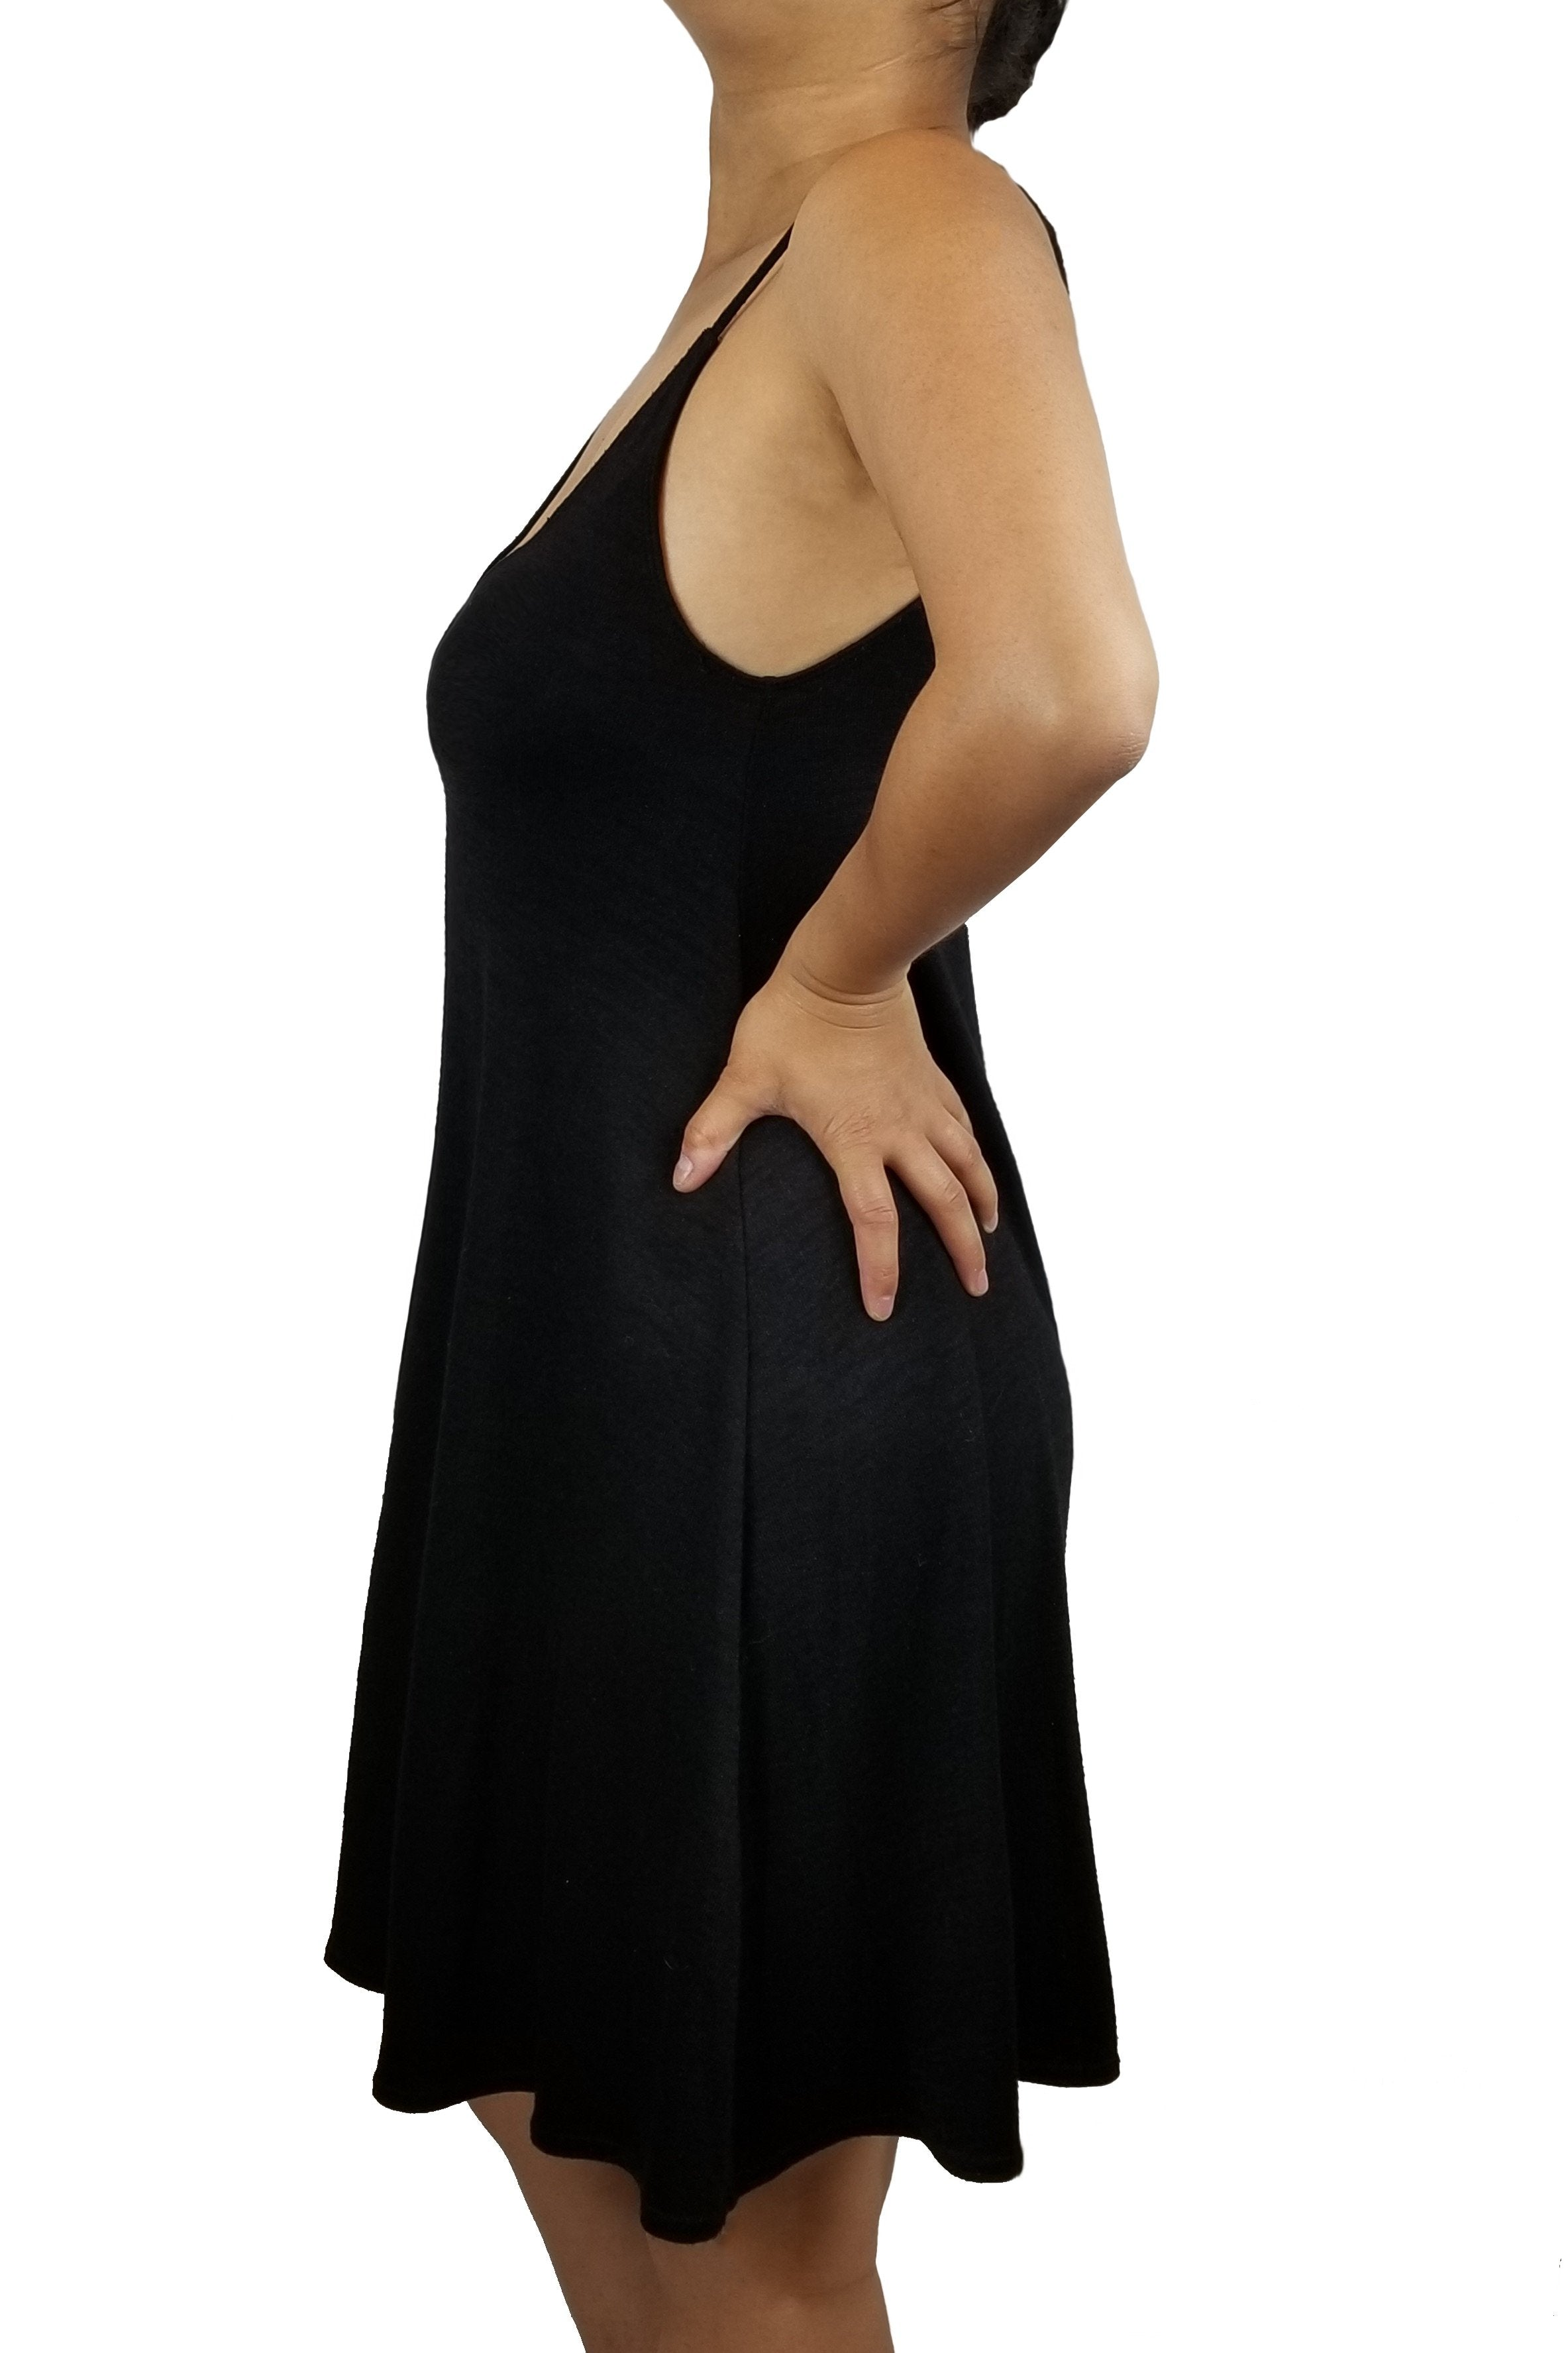 Wilfred Free Open back Spaghetti Strap Shift Dress, Comfortable and simple spaghetti strap dress for your days off., Black, 48% Rayon, 48% Polyester, 4% Spandex, Open back black mini dress, comfy black mini dress, simple cute black dress